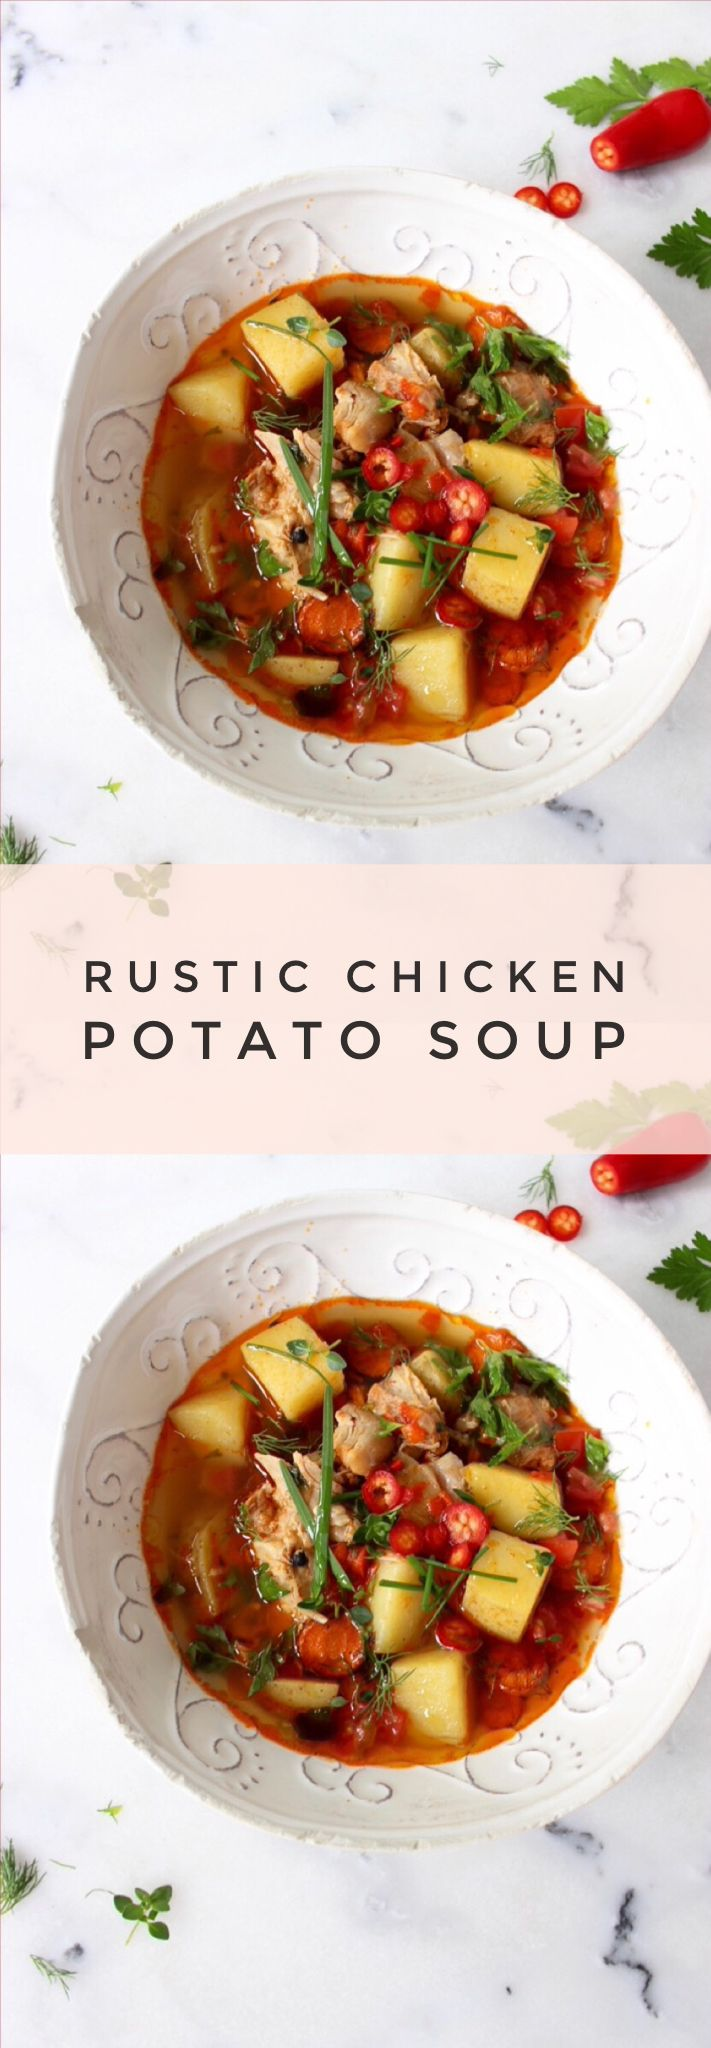 Rustic Chicken & Potato Soup Recipe | CiaoFlorentina.com @CiaoFlorentina